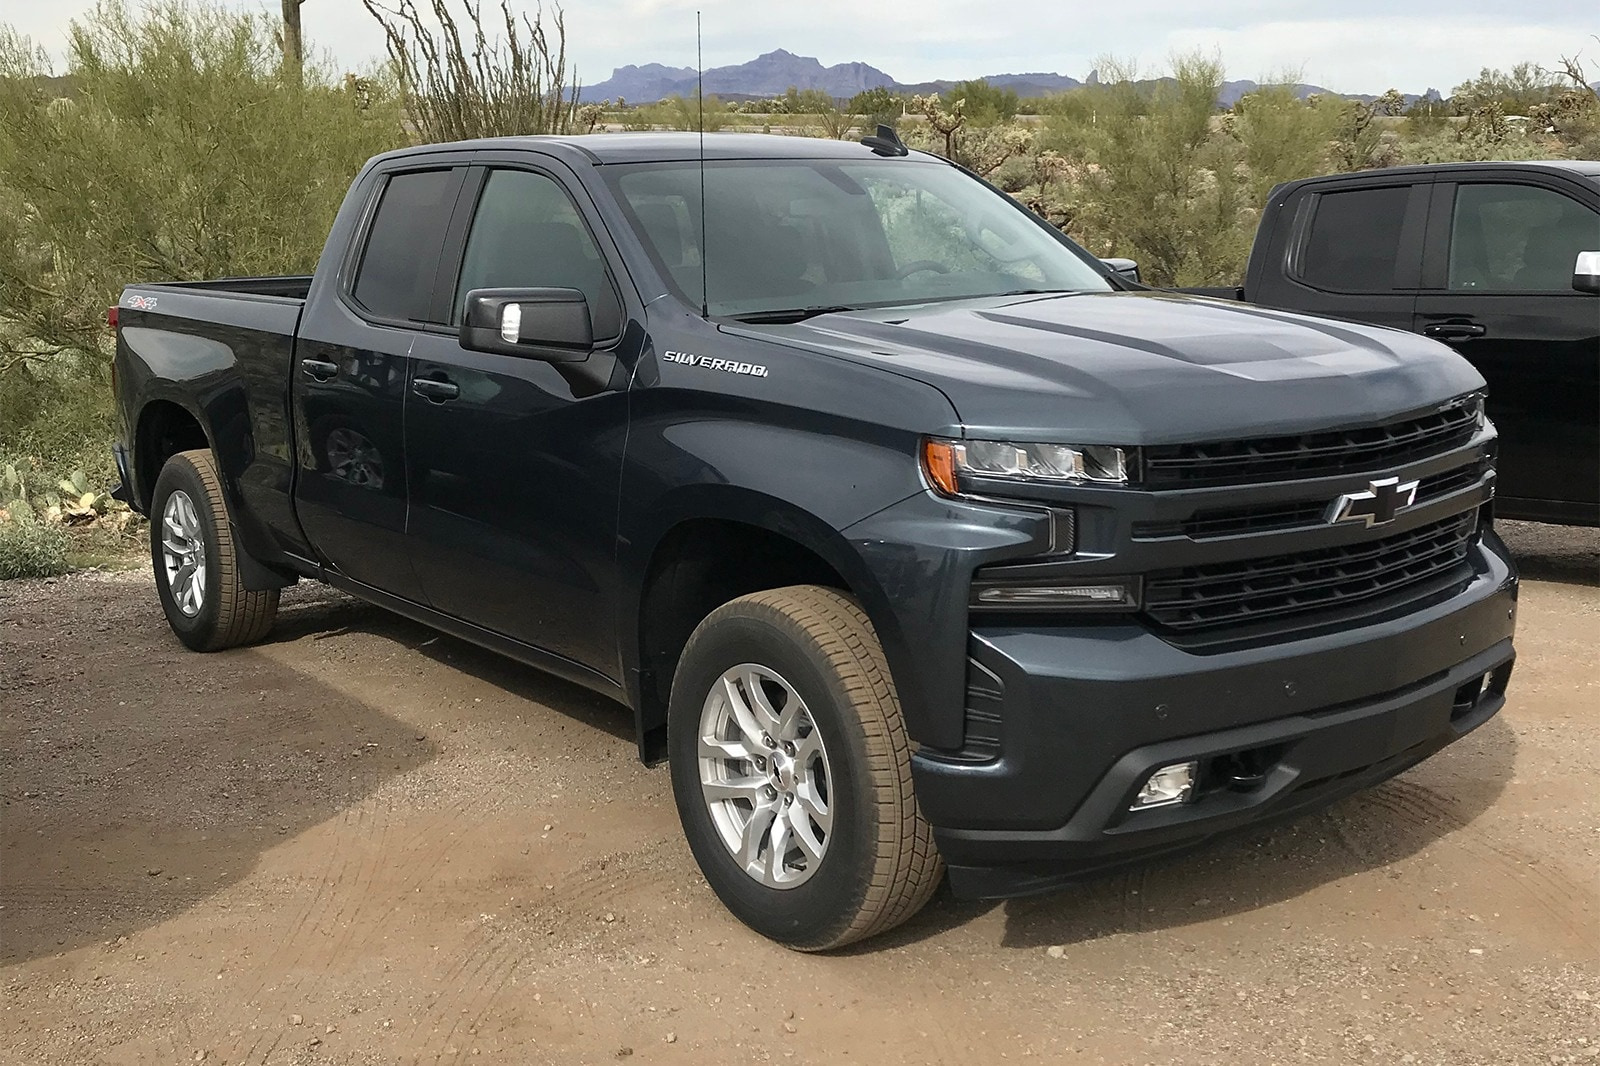 hight resolution of aside from the cylinder count the other big hurdle for chevrolet will be pricing the venn diagram subset of truck buyers who genuinely need the capability